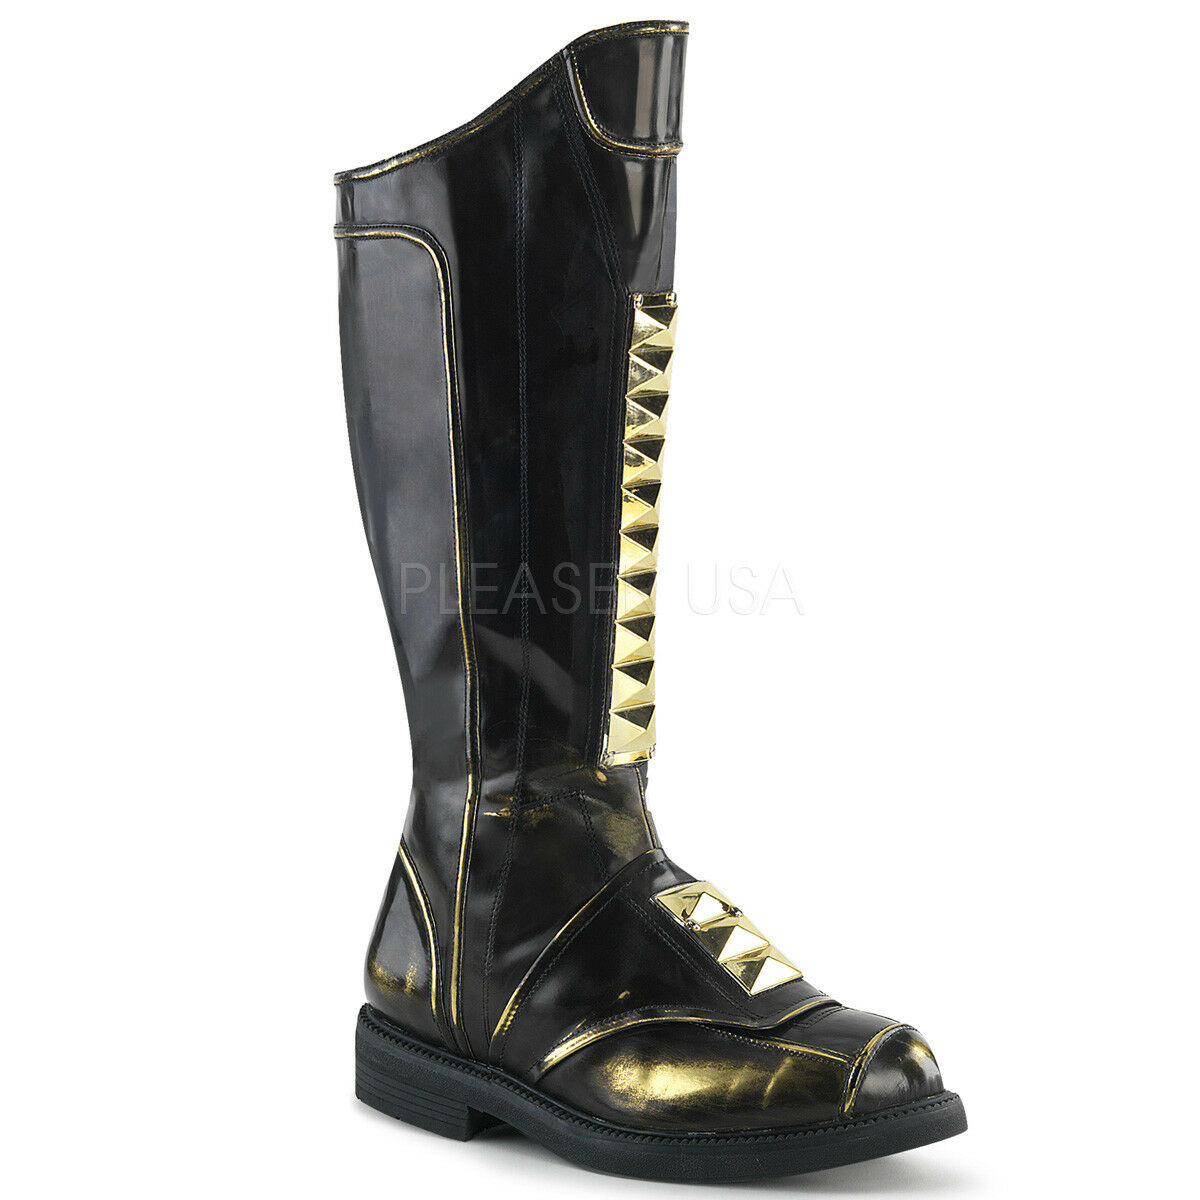 nero oro Steampunk Star Wards Space Pirate Pirate Pirate LARP Uomo Knee High stivali b4e405